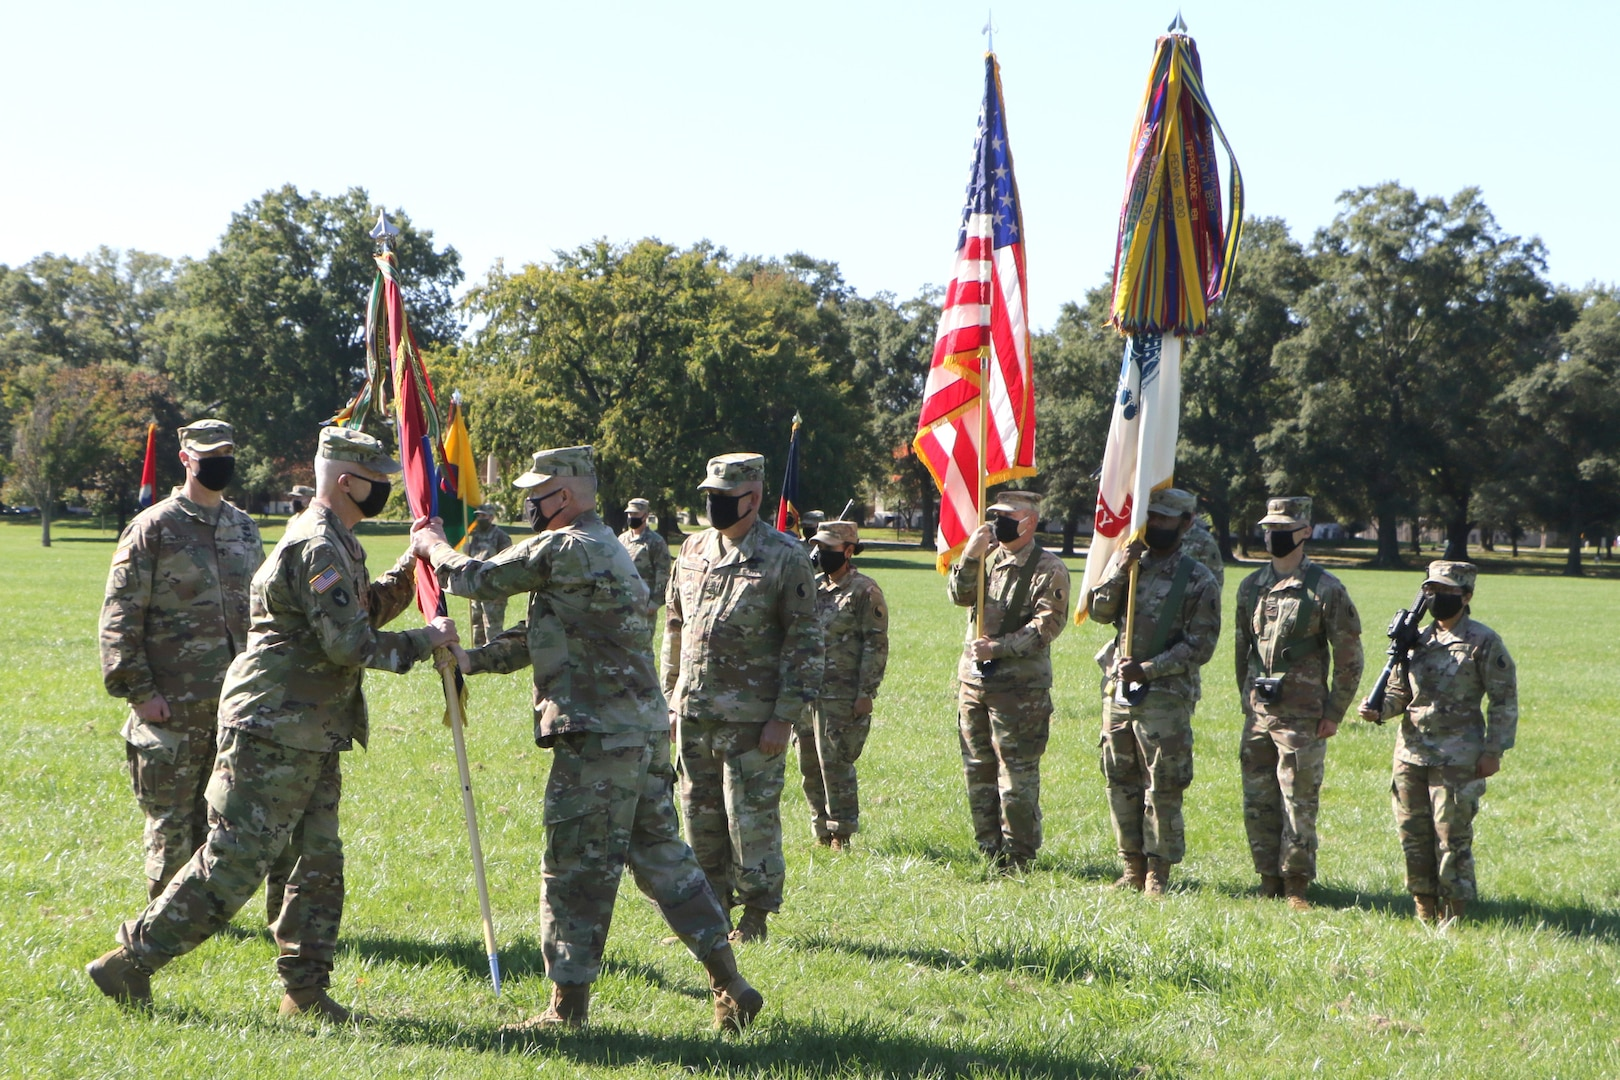 Rhodes succeeds Epperly as 29th Infantry Division commander